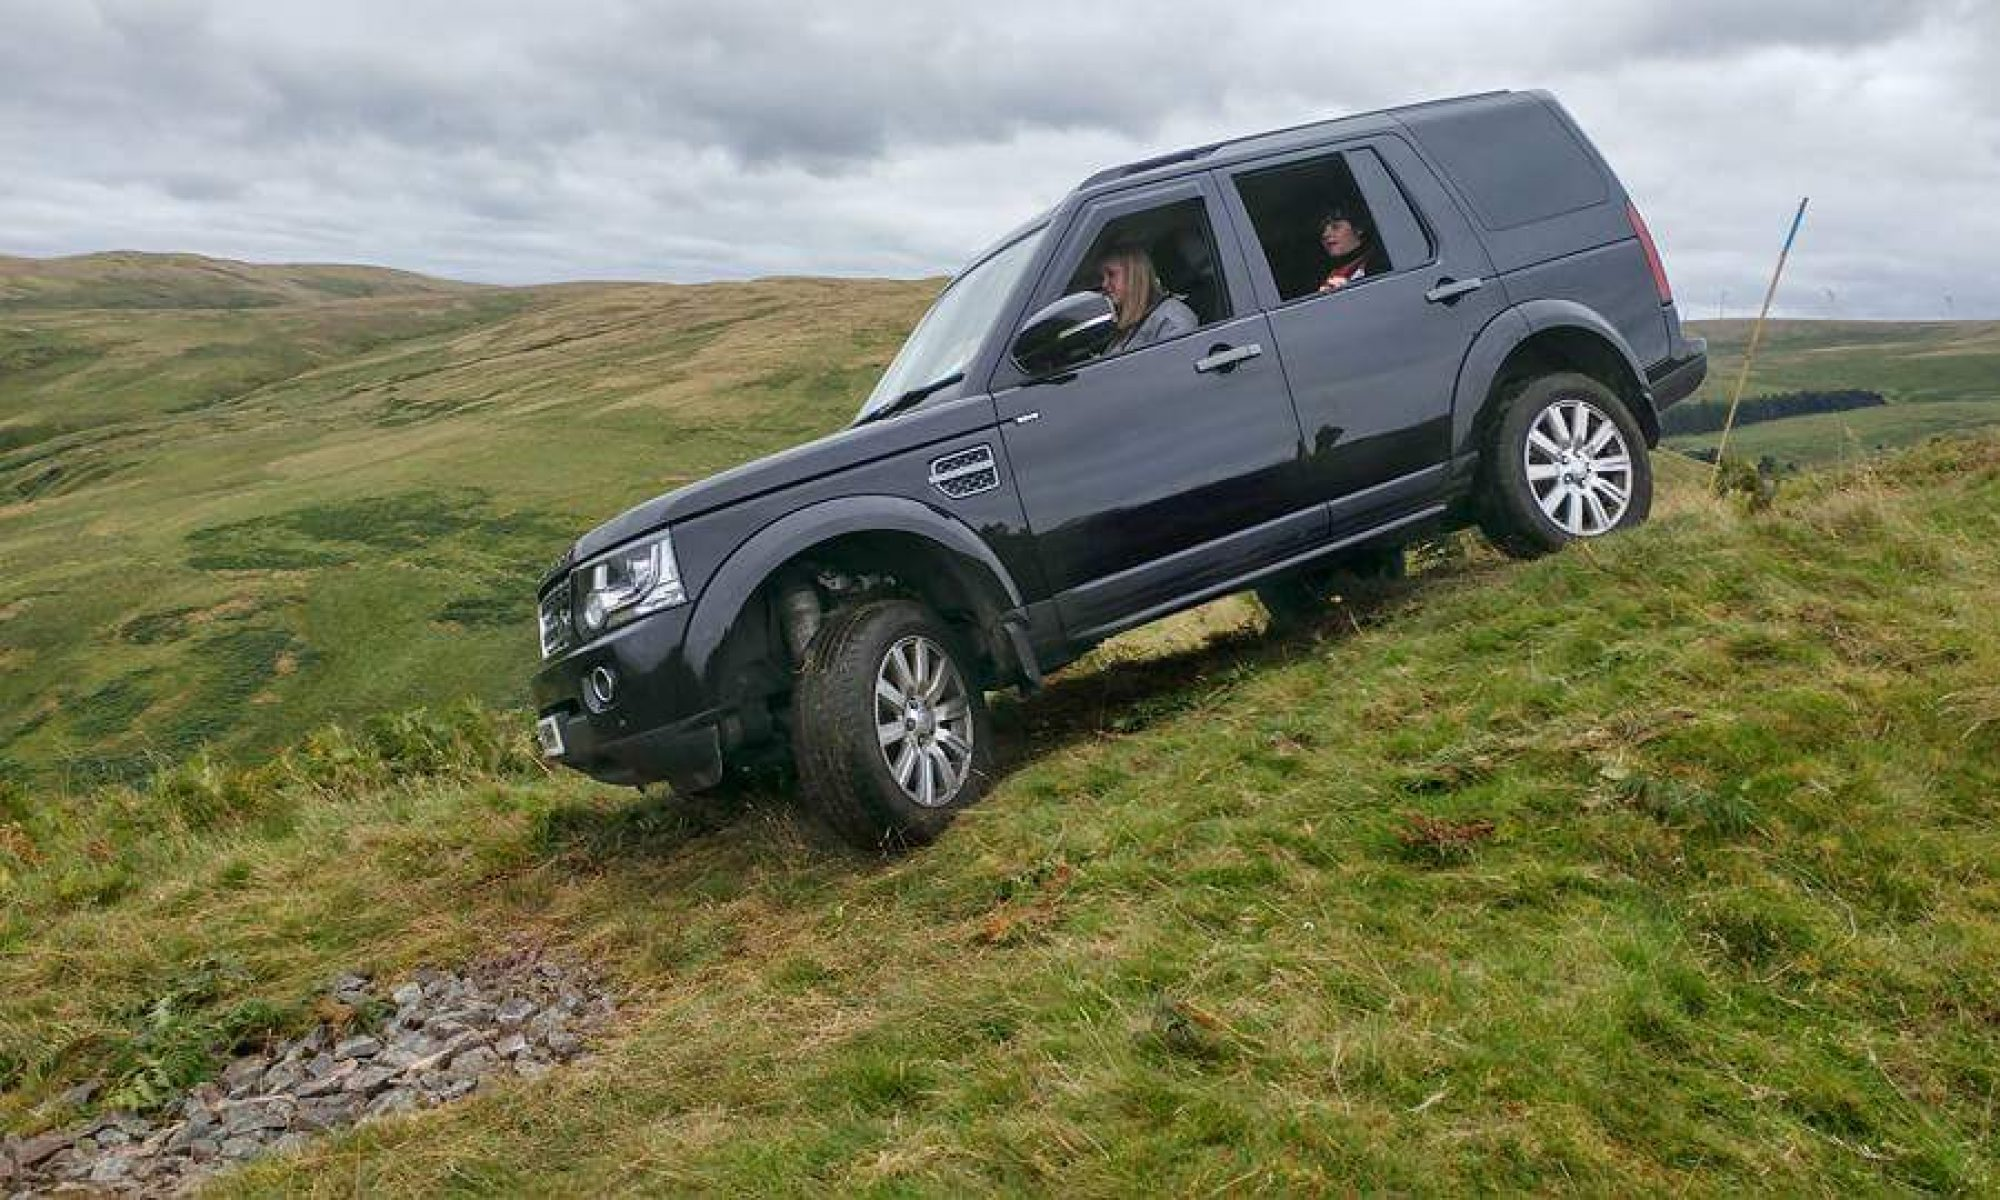 Scottish Off Road Club